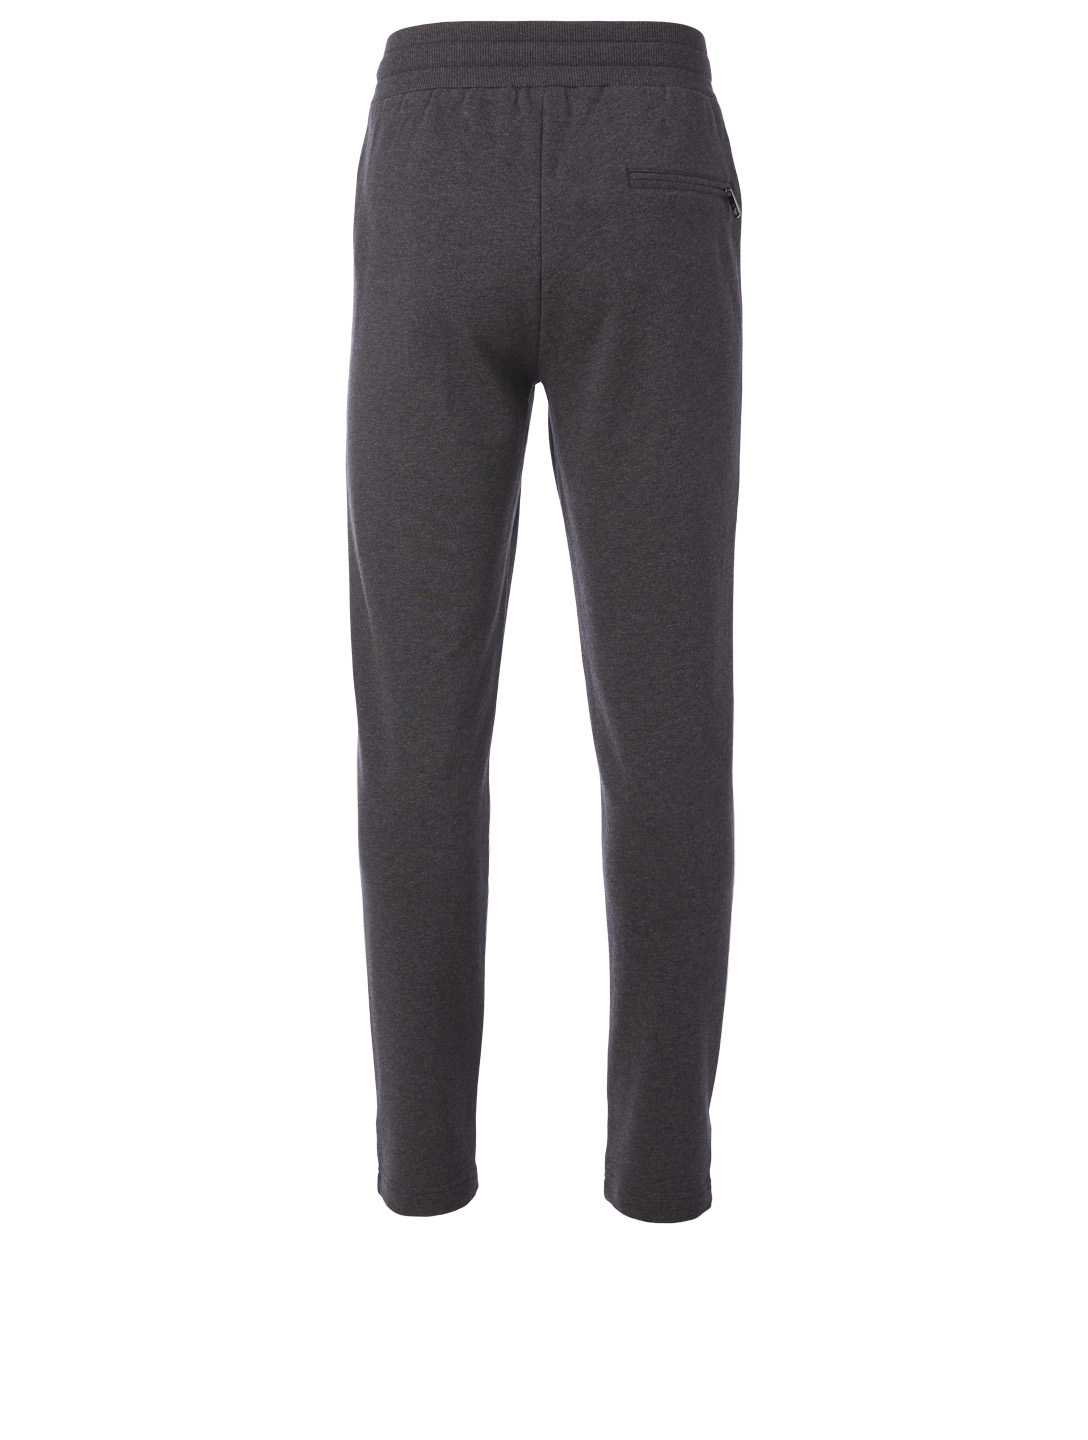 DOLCE & GABBANA Cotton Jogger Pants With Patch Men's Grey